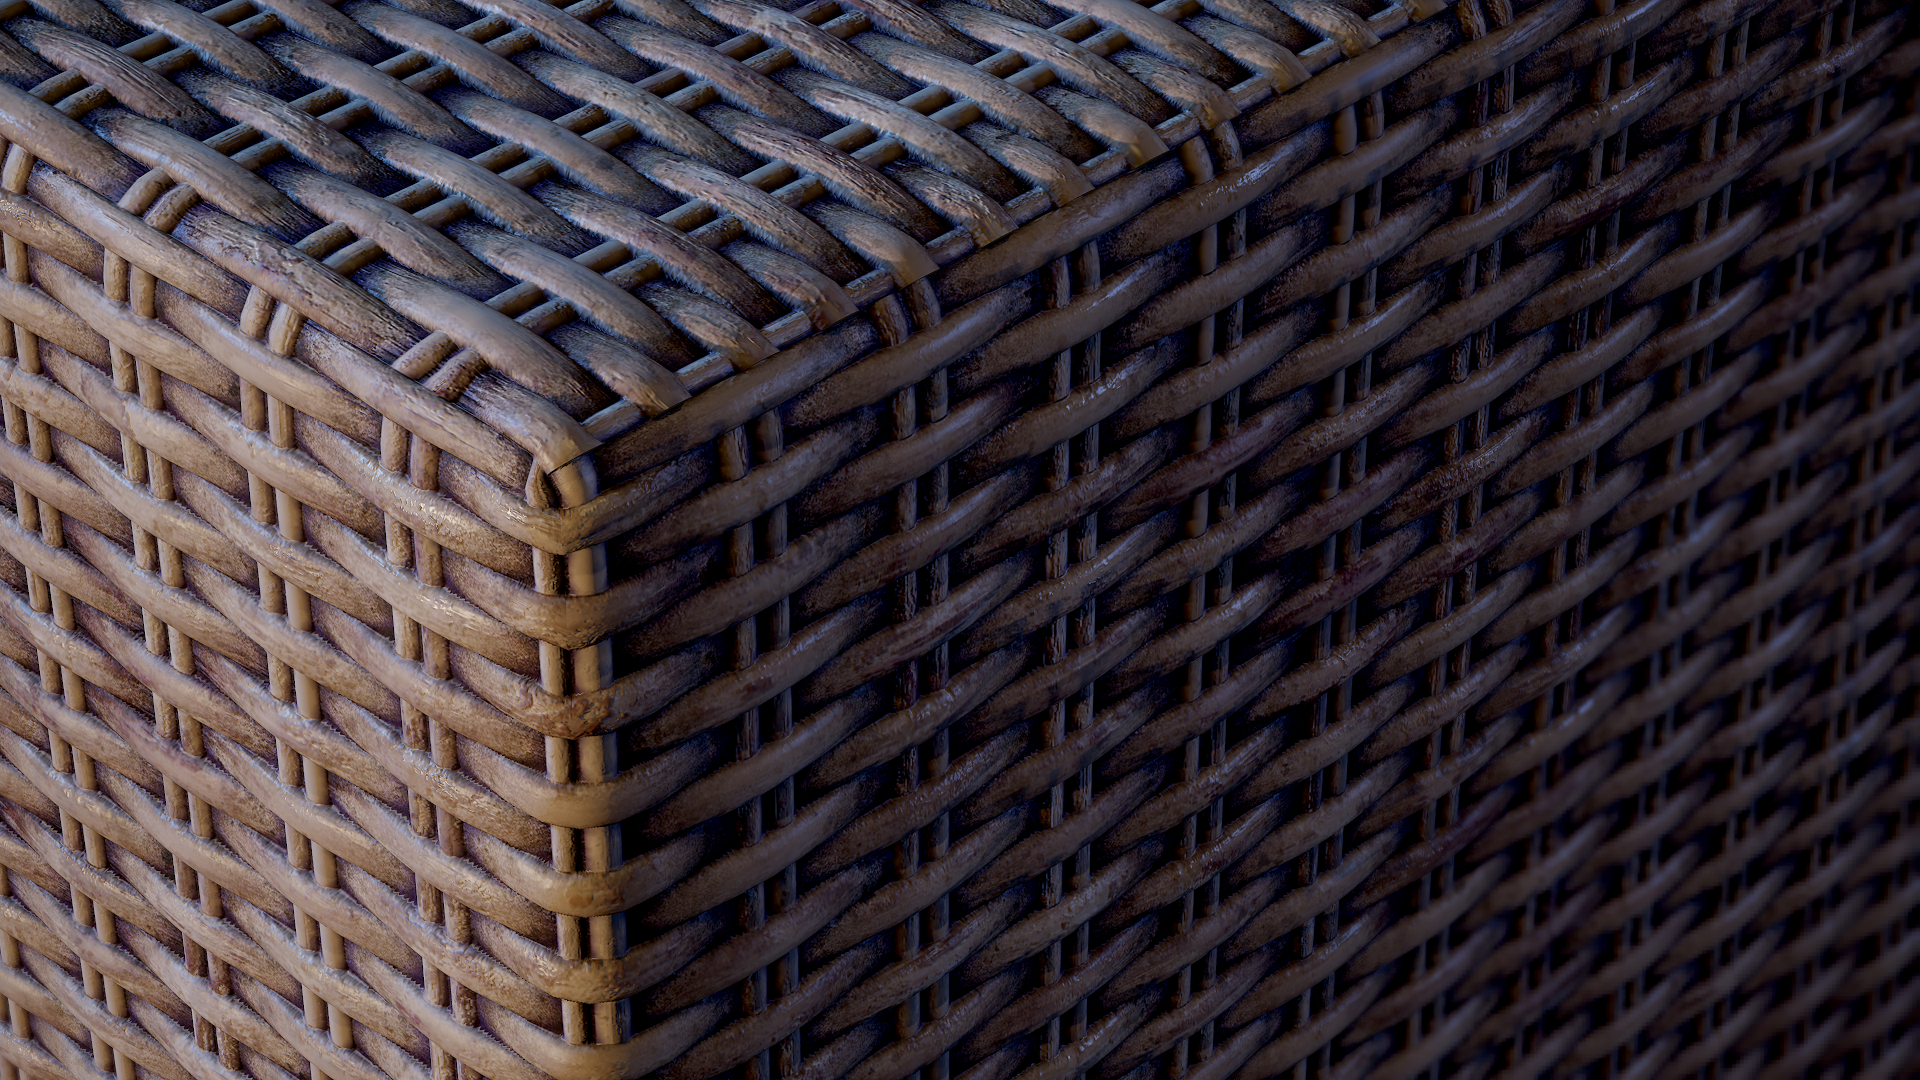 Wicker - Subtance Material Tutorial